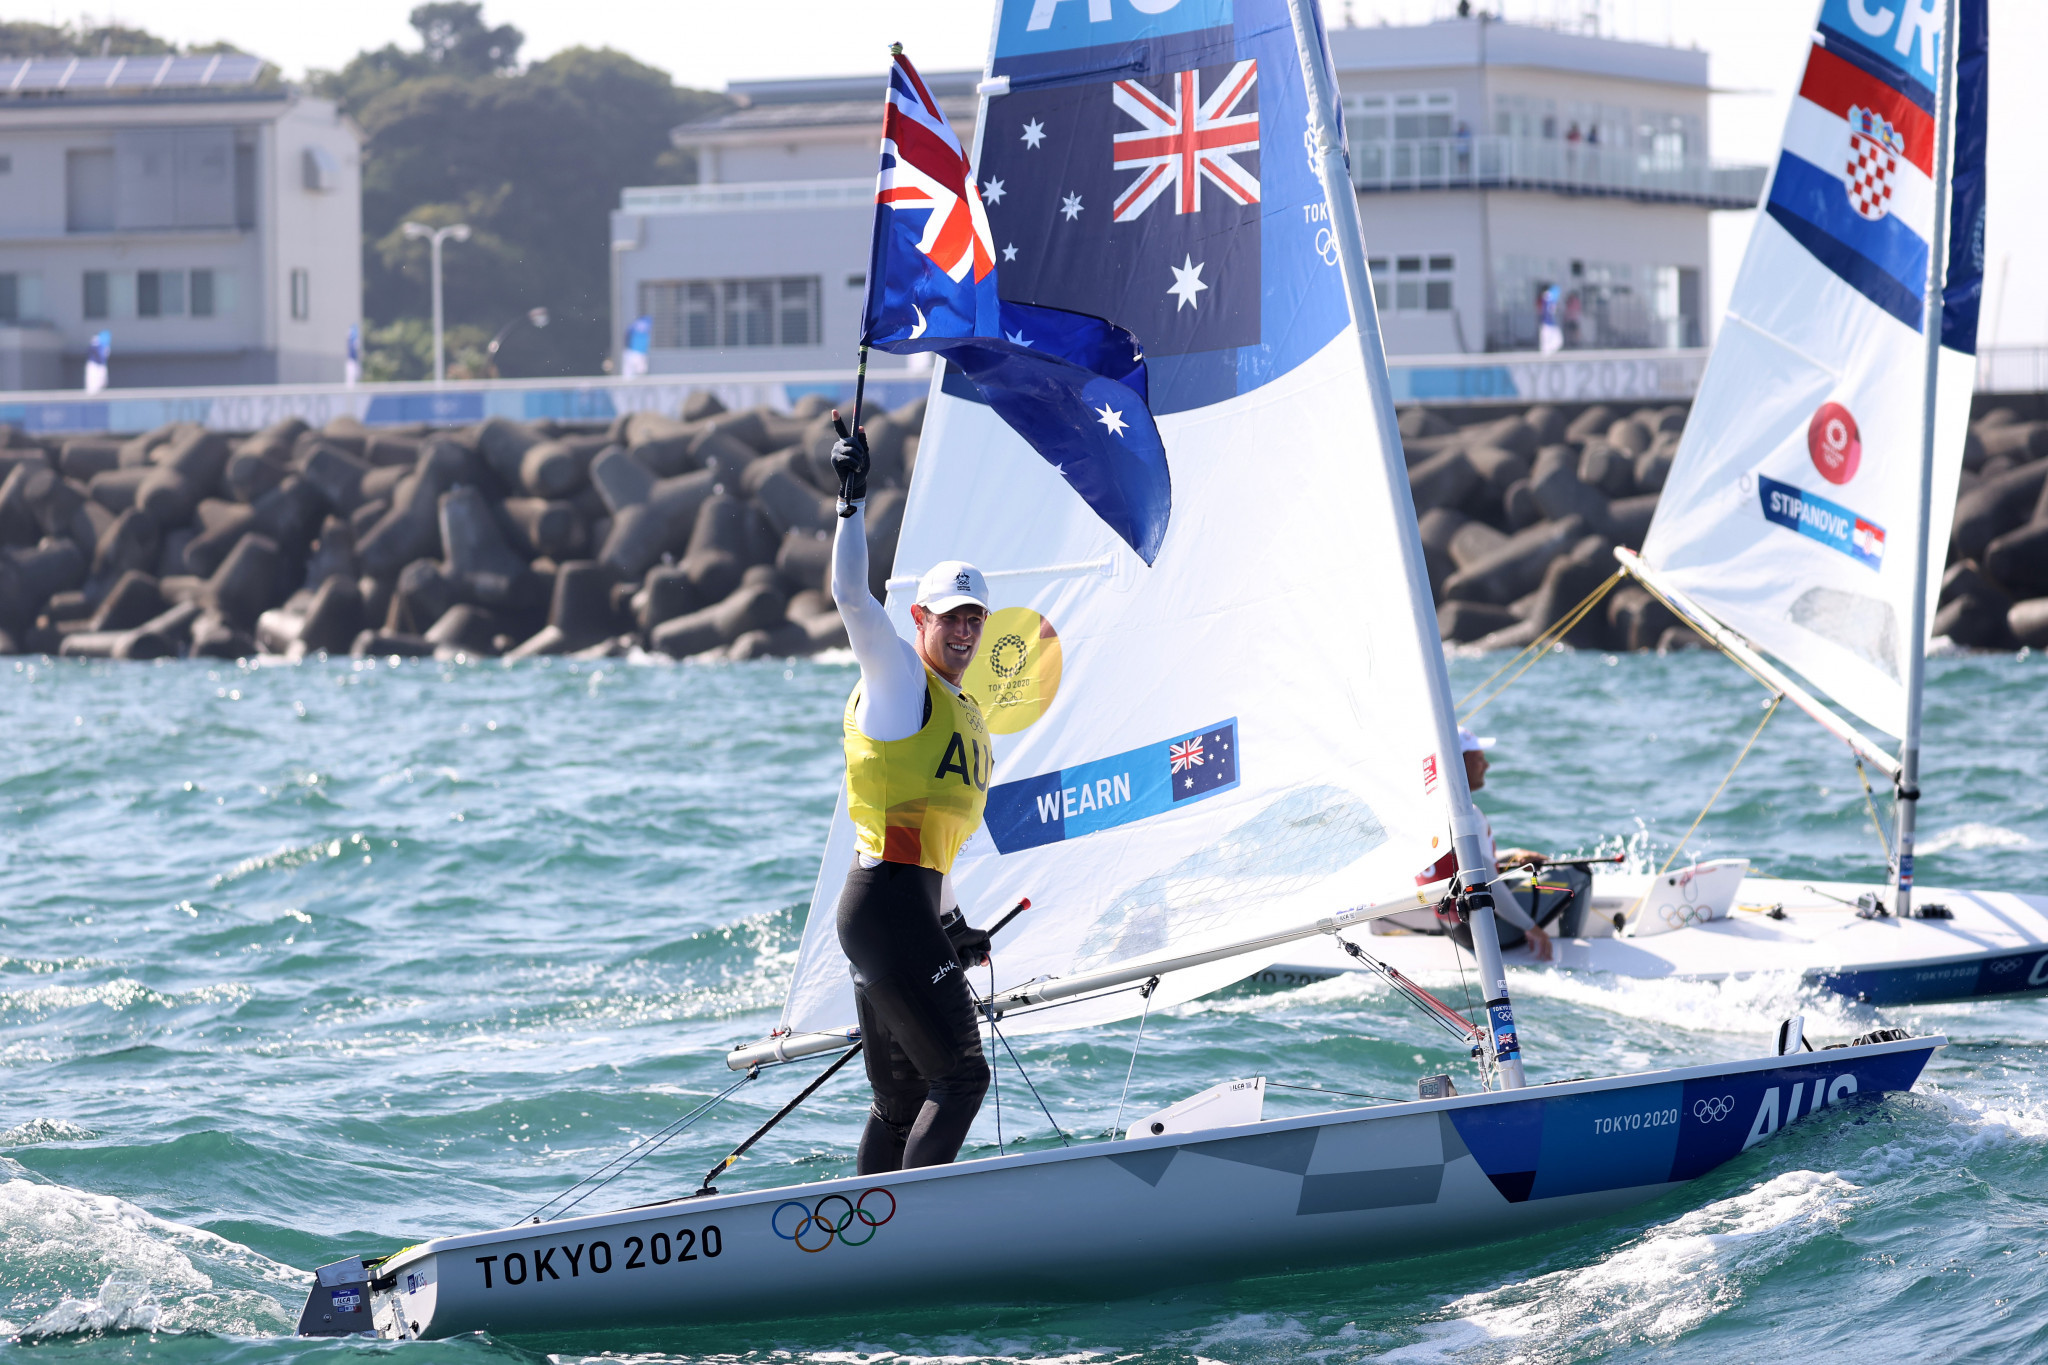 Matt Wearn triumphed in the men's laser competition ©Getty Images